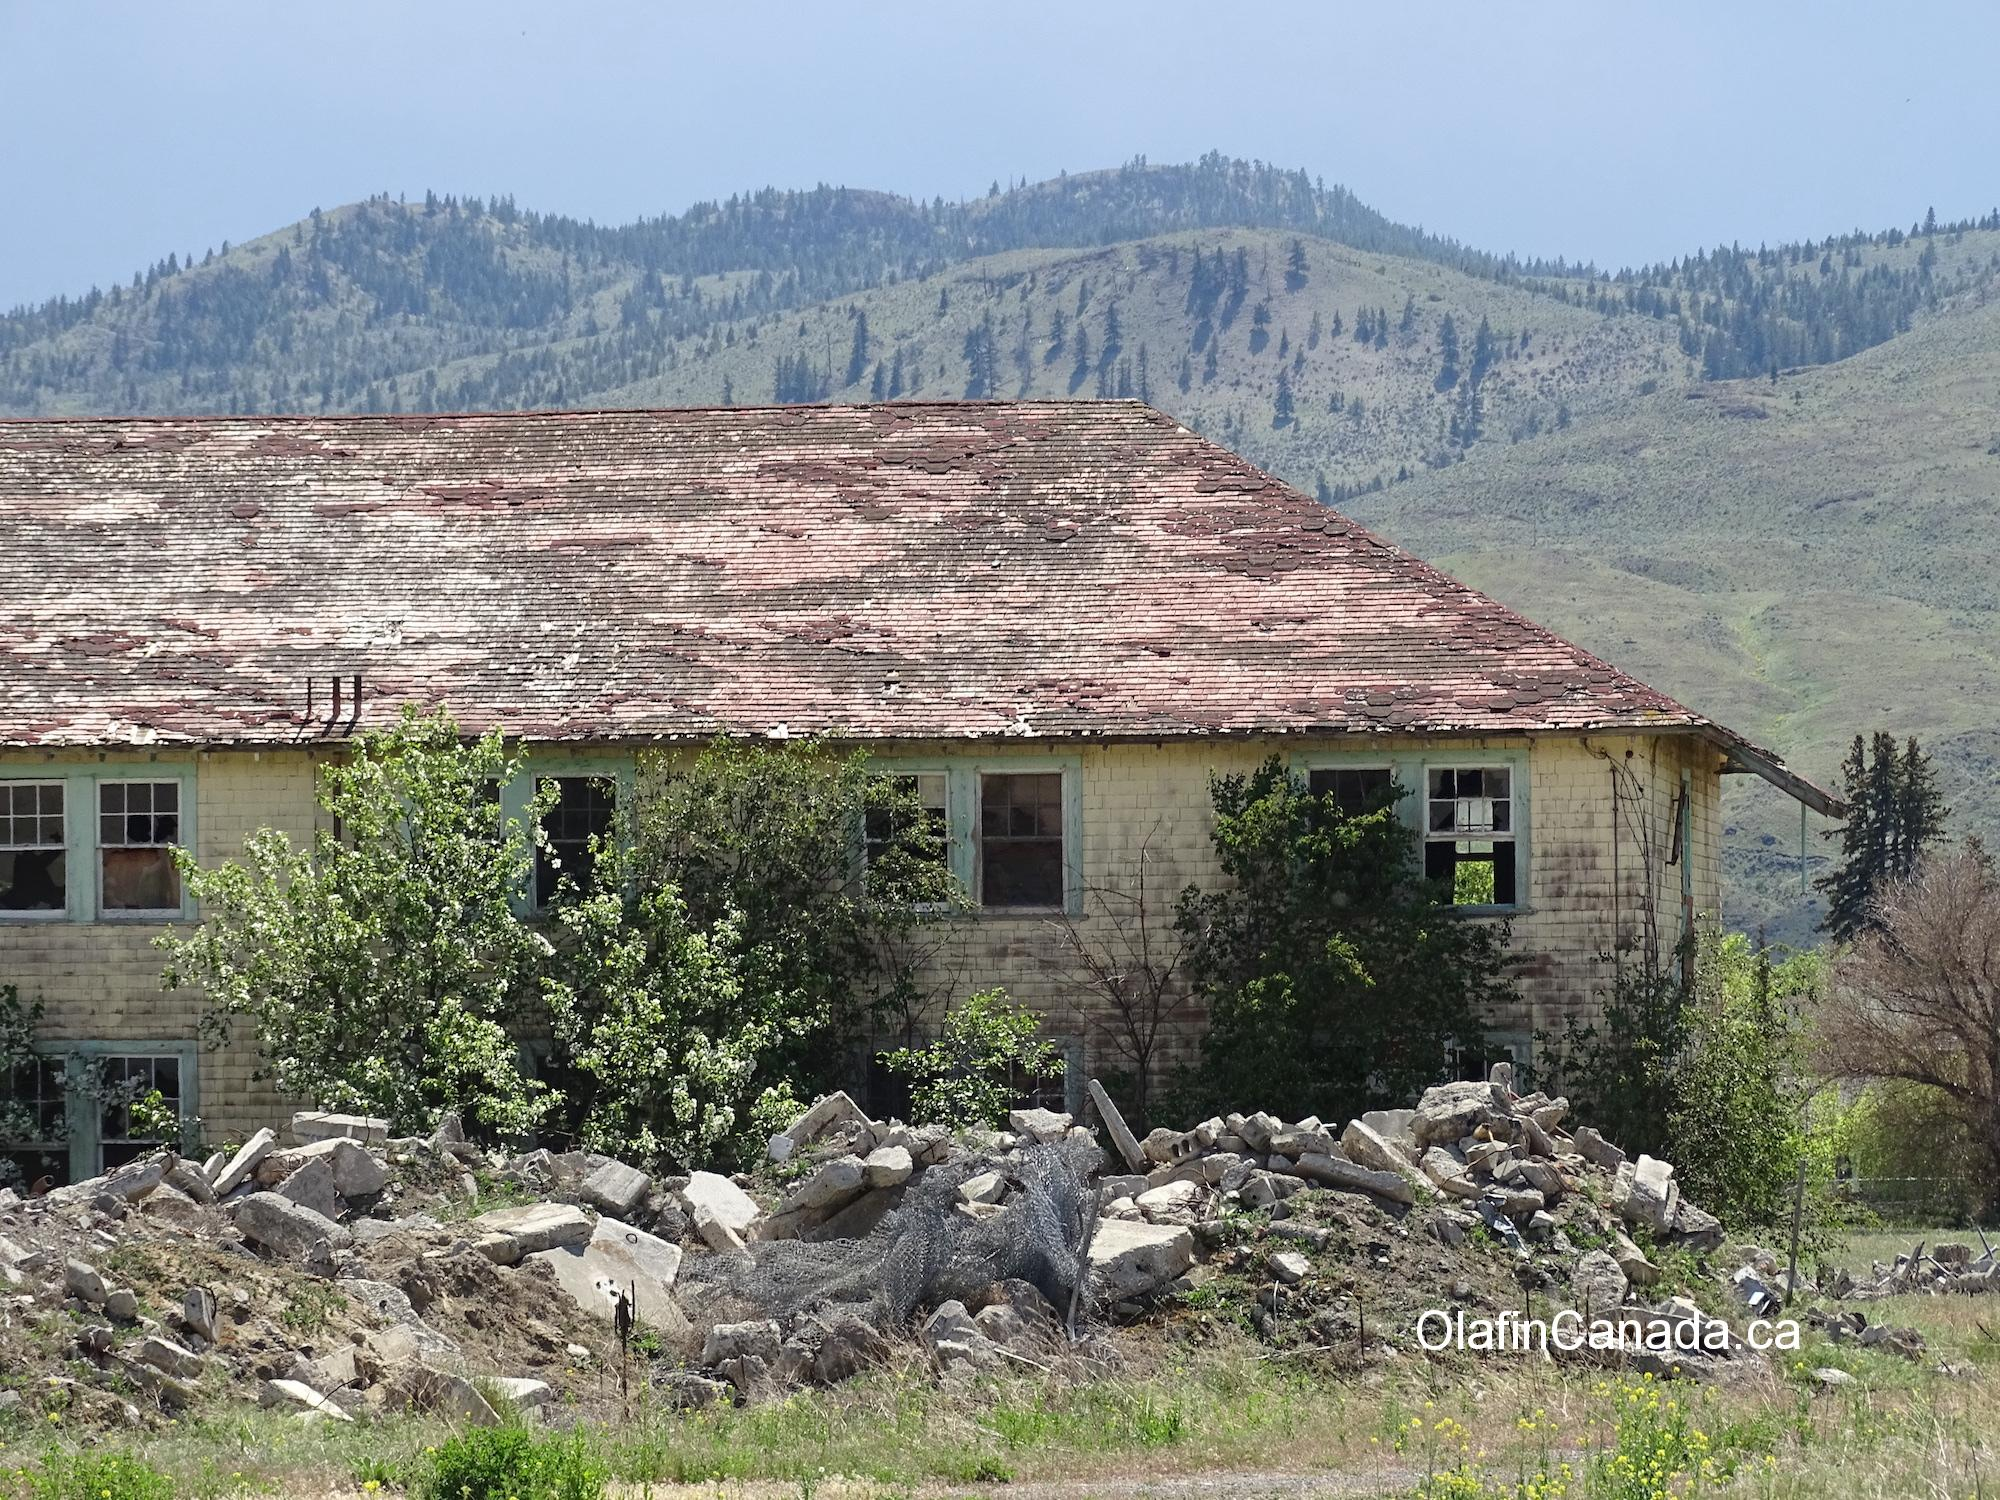 Meadowview dormitory in Tranquille near Kamloops. #olafincanada #britishcolumbia #discoverbc #abandonedbc #tranquille